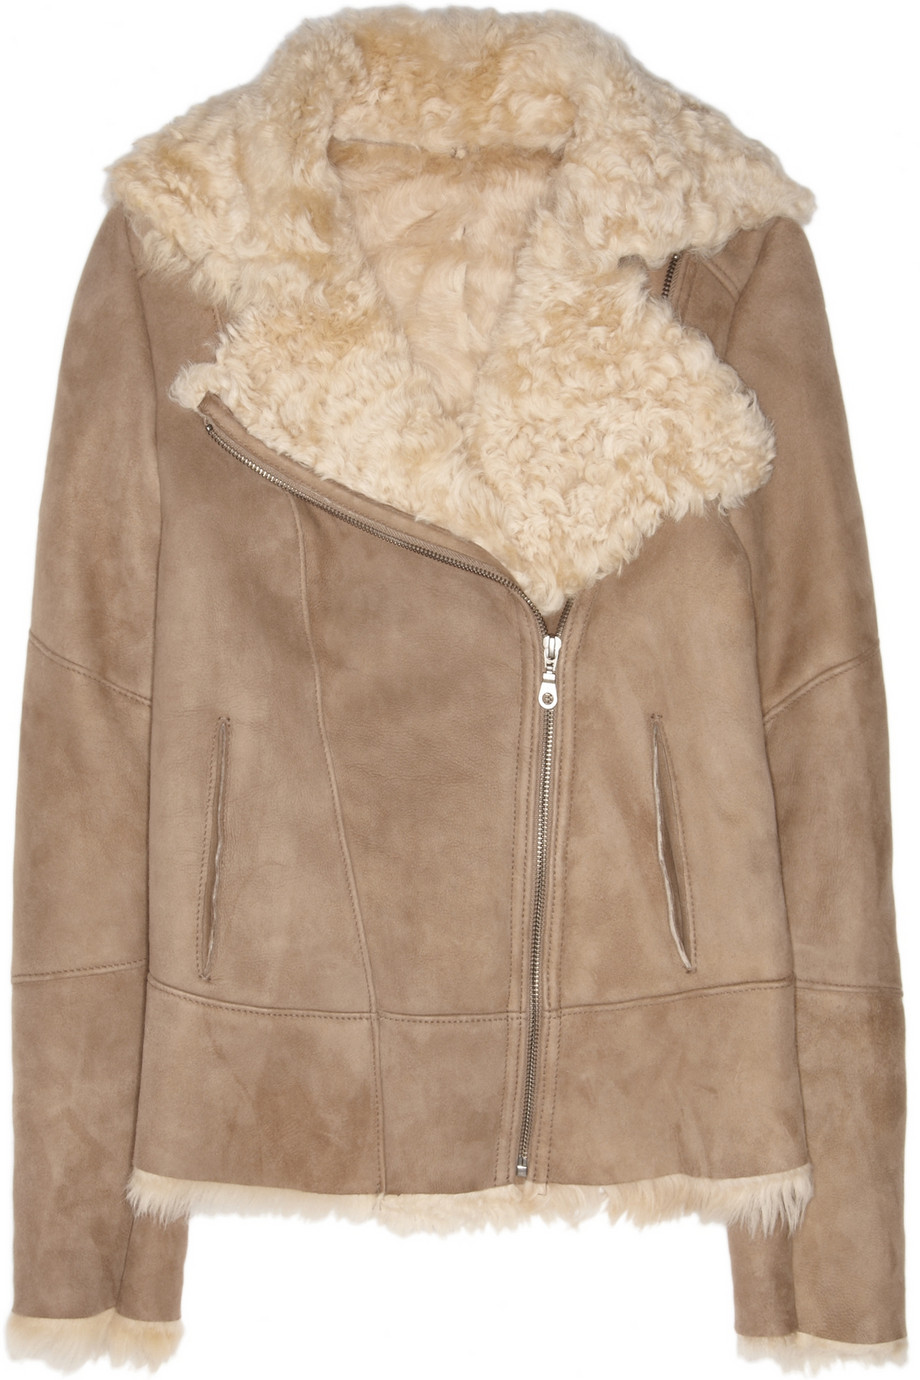 Shearling aviator jacket | Karl by Karl Donoghue | THE OUTNET